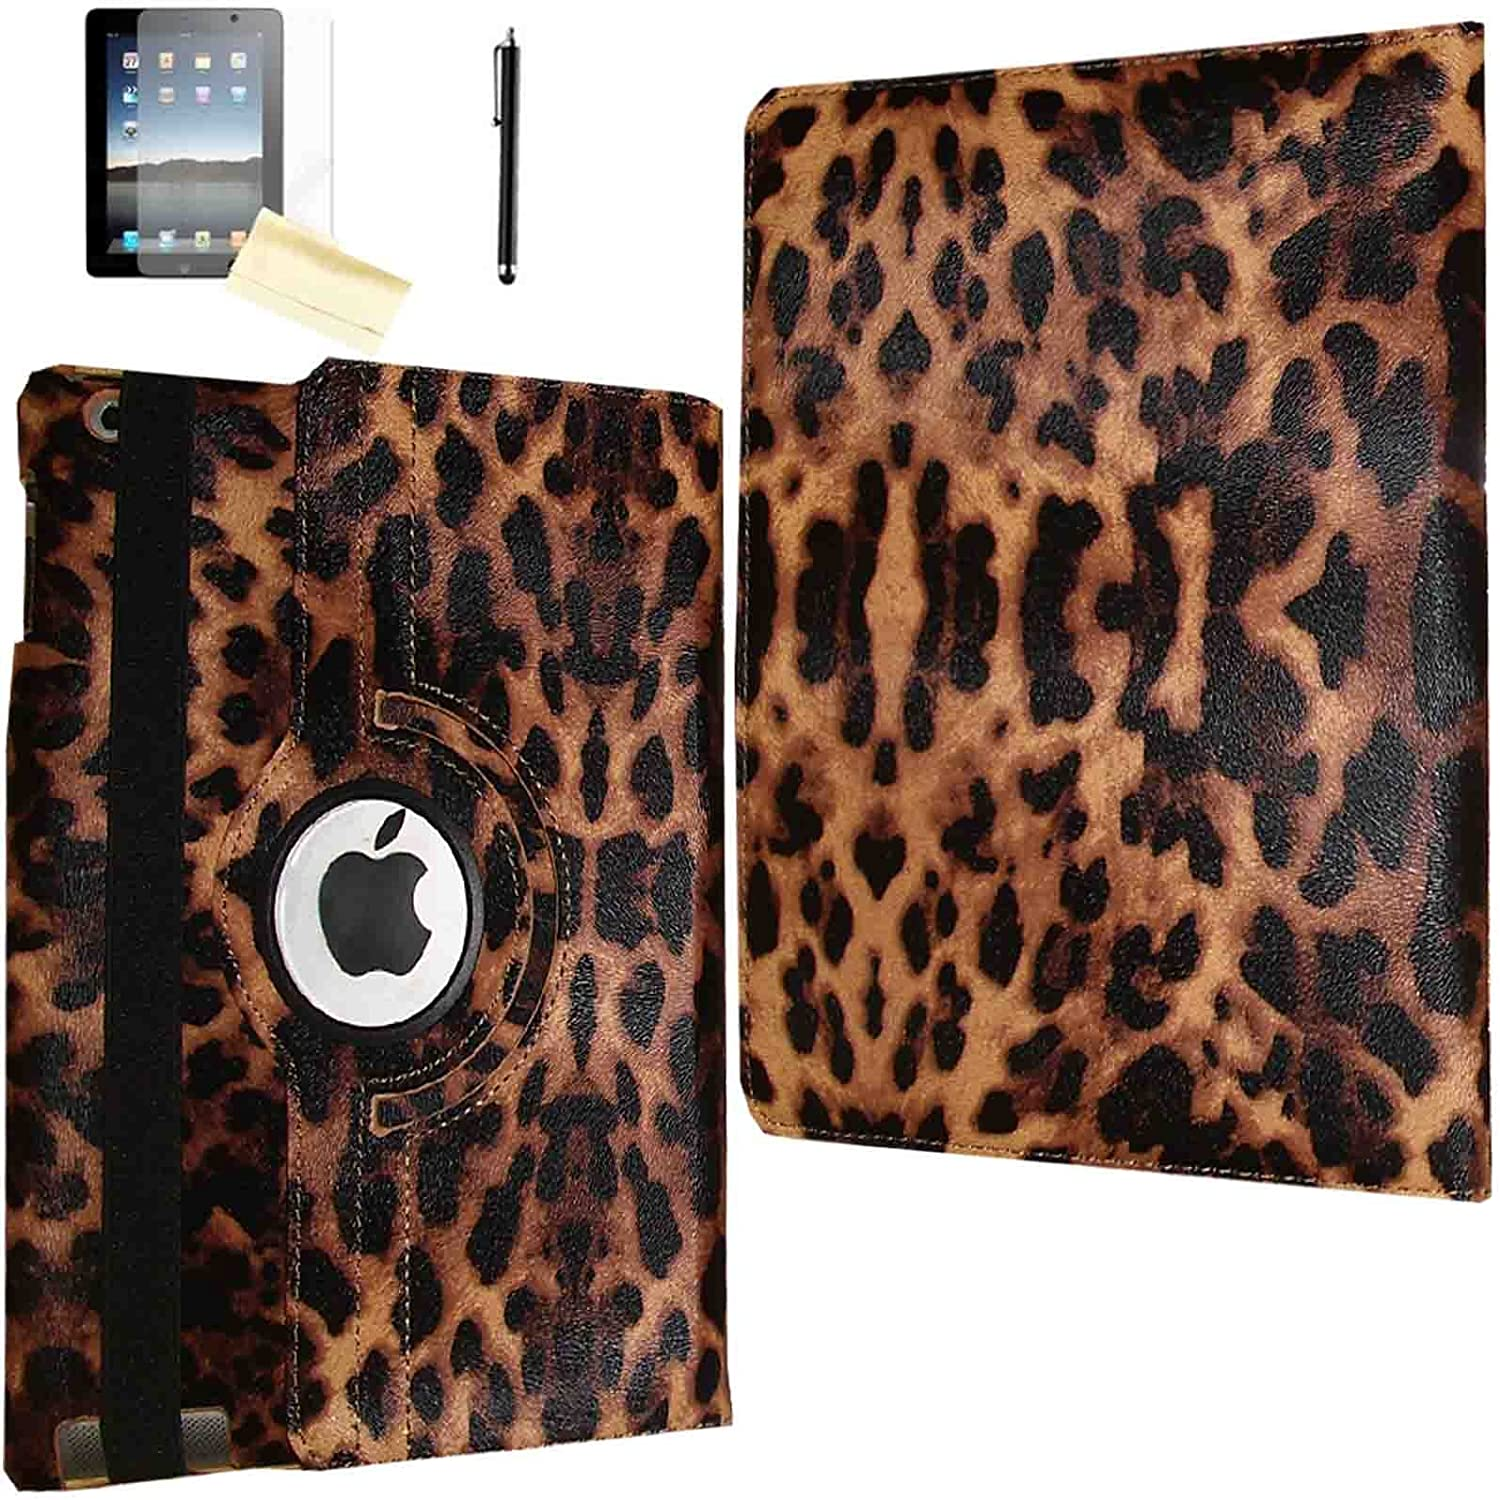 JYtrend Case for iPad Air (2013 Released), (R) Rotating Stand Smart Case Cover Magnetic Auto Wake Up/Sleep for iPad Air (Air 1) A1474 A1475 A1476 (Leopard)